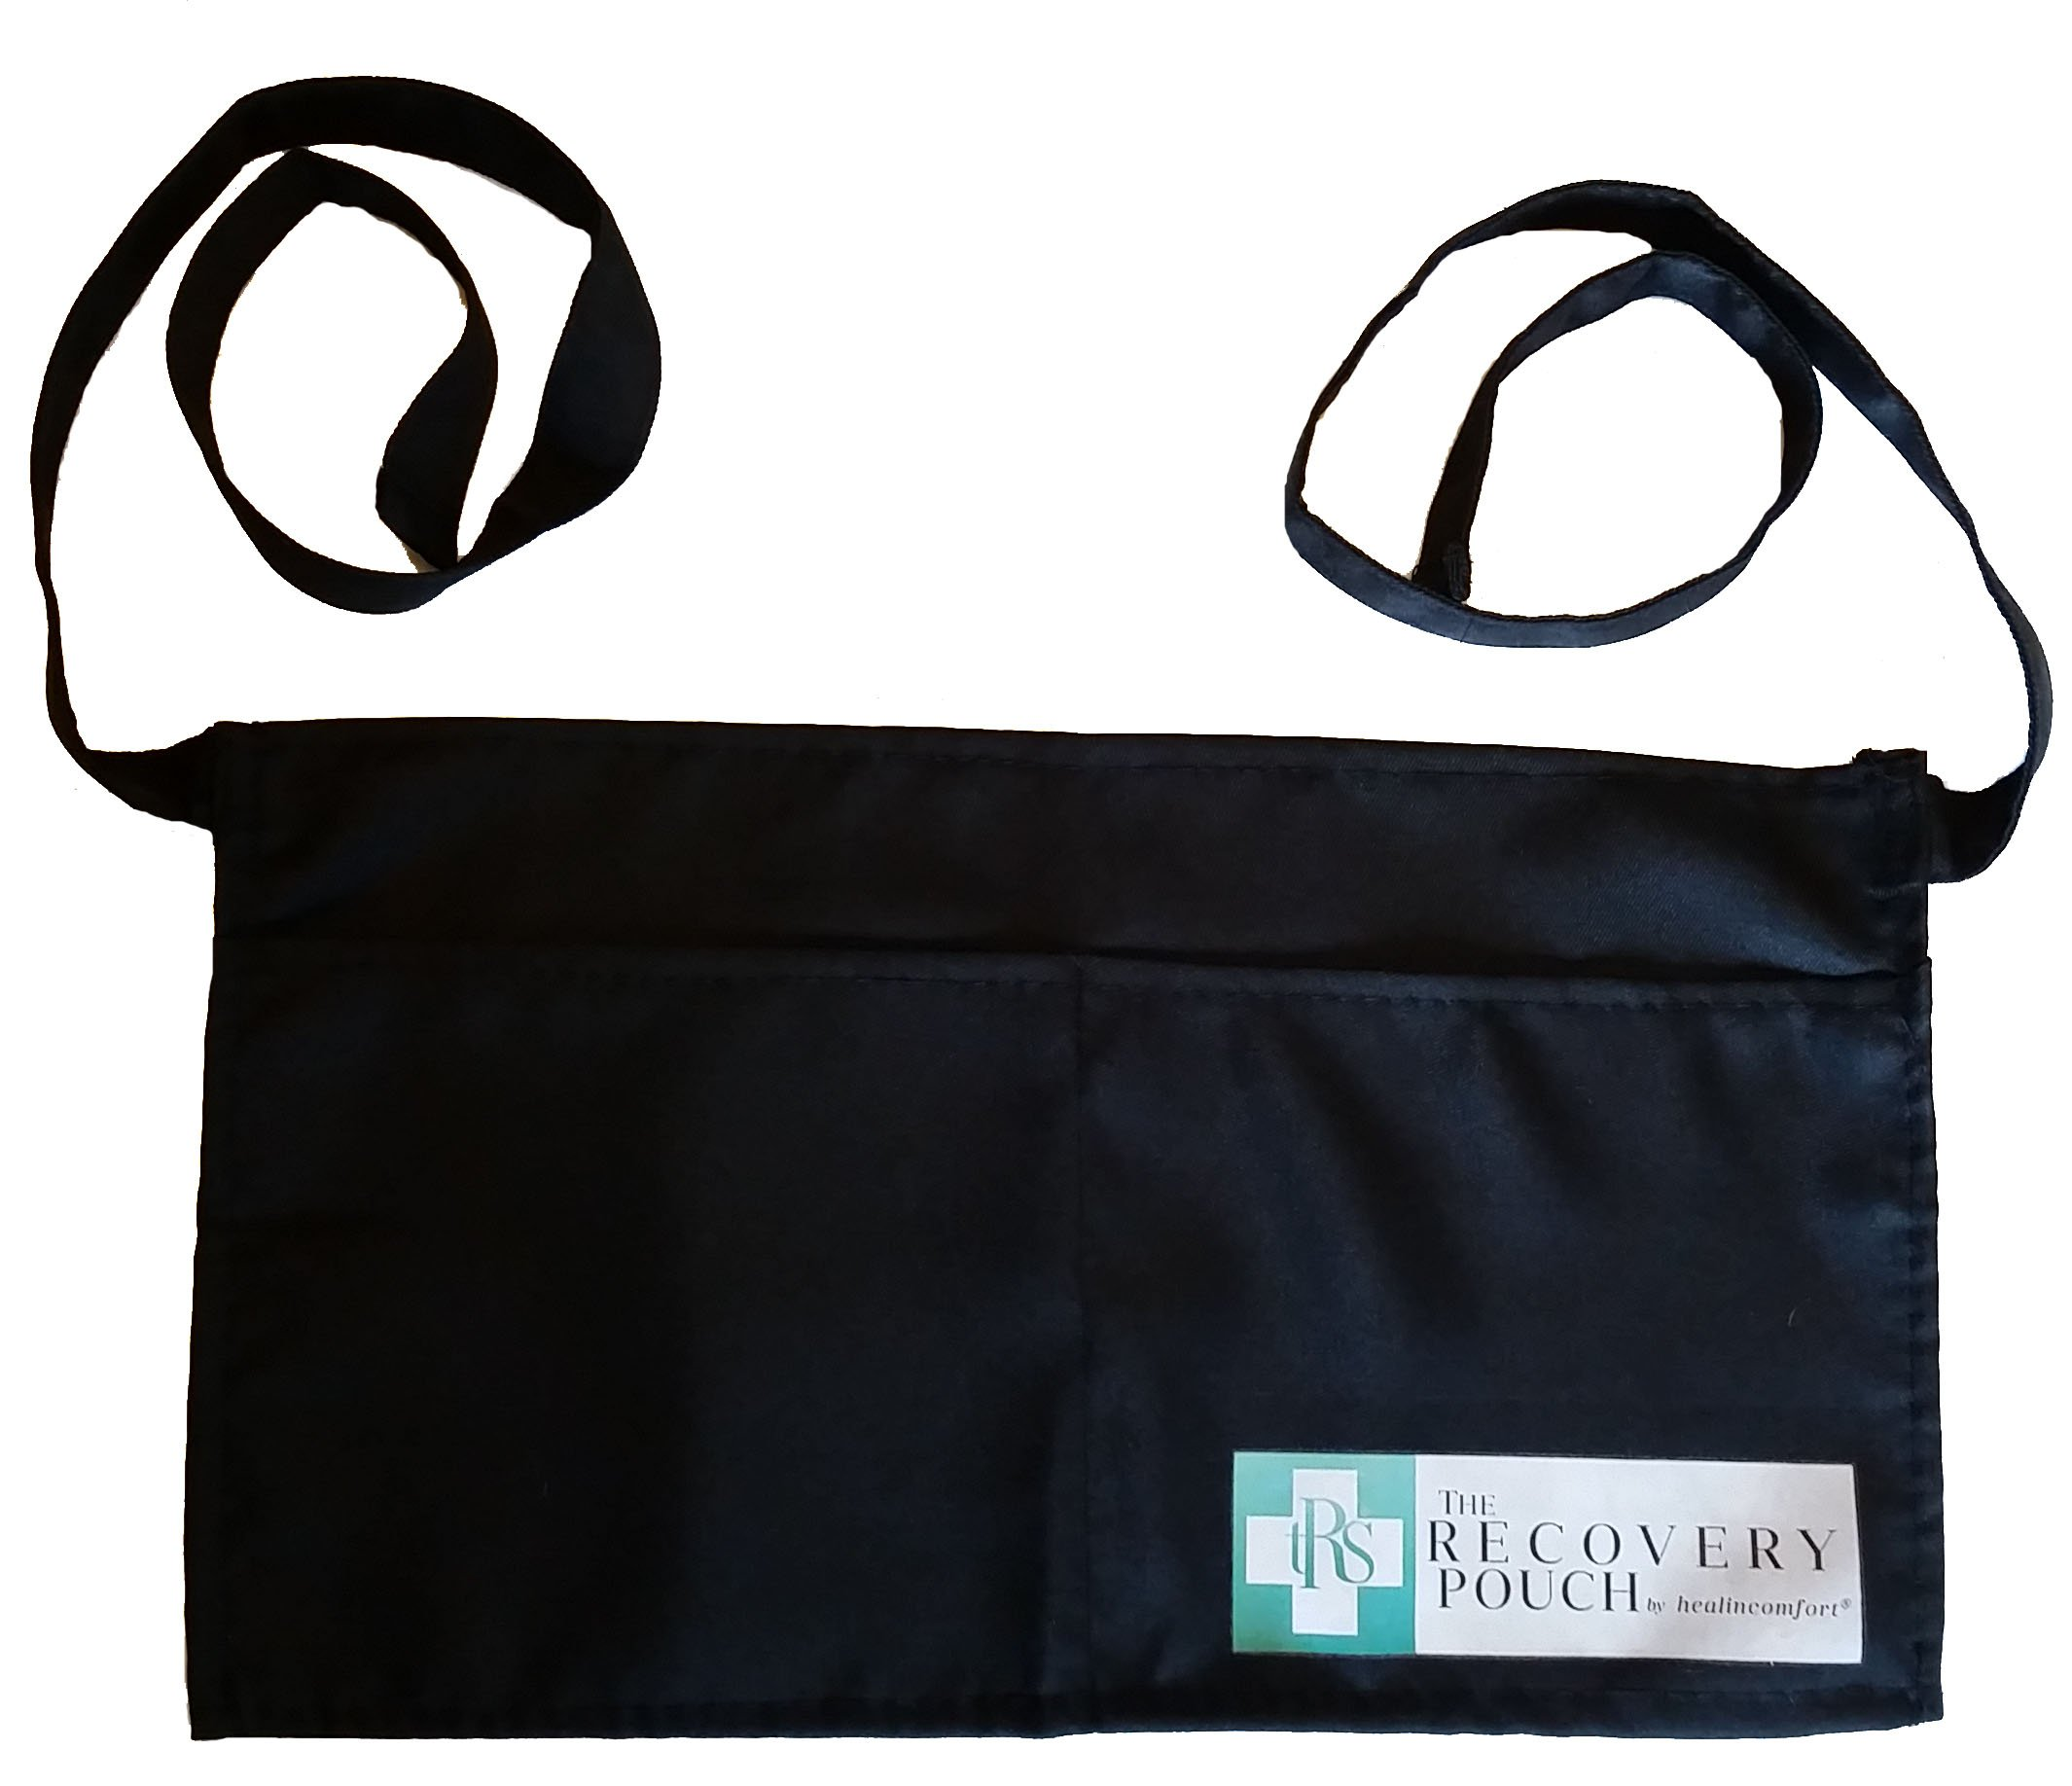 Heal in Comfort Breast Cancer Mastectomy Drainage Pouch Apron Belt 2 Large Pockets Enough For Drains Cell Phones TV Changer by Heal in Comfort